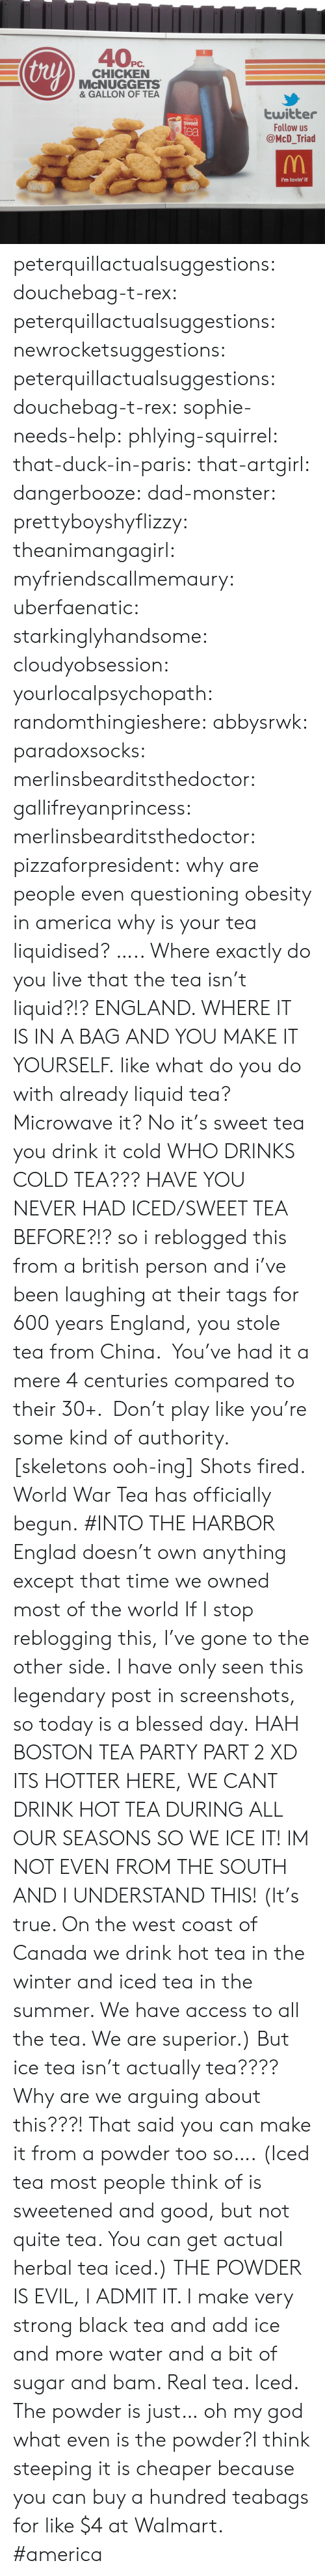 Iced Tea: thy  PC.  CHICKEN  McNUGGETS  & GALLON OF TEA  twitter  Follow us  @McD_Triad  Mickey Ds  sweet  ea  i'm lovin' it peterquillactualsuggestions:  douchebag-t-rex:  peterquillactualsuggestions:  newrocketsuggestions:  peterquillactualsuggestions: douchebag-t-rex:   sophie-needs-help:   phlying-squirrel:  that-duck-in-paris:   that-artgirl:  dangerbooze:  dad-monster:  prettyboyshyflizzy:  theanimangagirl:  myfriendscallmemaury:  uberfaenatic:  starkinglyhandsome:  cloudyobsession:  yourlocalpsychopath:  randomthingieshere:  abbysrwk:  paradoxsocks:  merlinsbearditsthedoctor:  gallifreyanprincess:  merlinsbearditsthedoctor:  pizzaforpresident:  why are people even questioning obesity in america  why is your tea liquidised?  ….. Where exactly do you live that the tea isn't liquid?!?  ENGLAND. WHERE IT IS IN A BAG AND YOU MAKE IT YOURSELF.  like what do you do with already liquid tea? Microwave it?   No it's sweet tea you drink it cold  WHO DRINKS COLD TEA???  HAVE YOU NEVER HAD ICED/SWEET TEA BEFORE?!?  so i reblogged this from a british person and i've been laughing at their tags for 600 years    England, you stole tea from China. You've had it a mere 4 centuries compared to their 30+. Don't play like you're some kind of authority.  [skeletons ooh-ing]  Shots fired. World War Tea has officially begun.  #INTO THE HARBOR    Englad doesn't own anything   except that time we owned most of the world     If I stop reblogging this, I've gone to the other side.   I have only seen this legendary post in screenshots, so today is a blessed day.   HAH BOSTON TEA PARTY PART 2    XD    ITS HOTTER HERE, WE CANT DRINK HOT TEA DURING ALL OUR SEASONS SO WE ICE IT! IM NOT EVEN FROM THE SOUTH AND I UNDERSTAND THIS!   (It's true. On the west coast of Canada we drink hot tea in the winter and iced tea in the summer. We have access to all the tea. We are superior.) But ice tea isn't actually tea???? Why are we arguing about this???! That said you can make it from a powder too so…. 